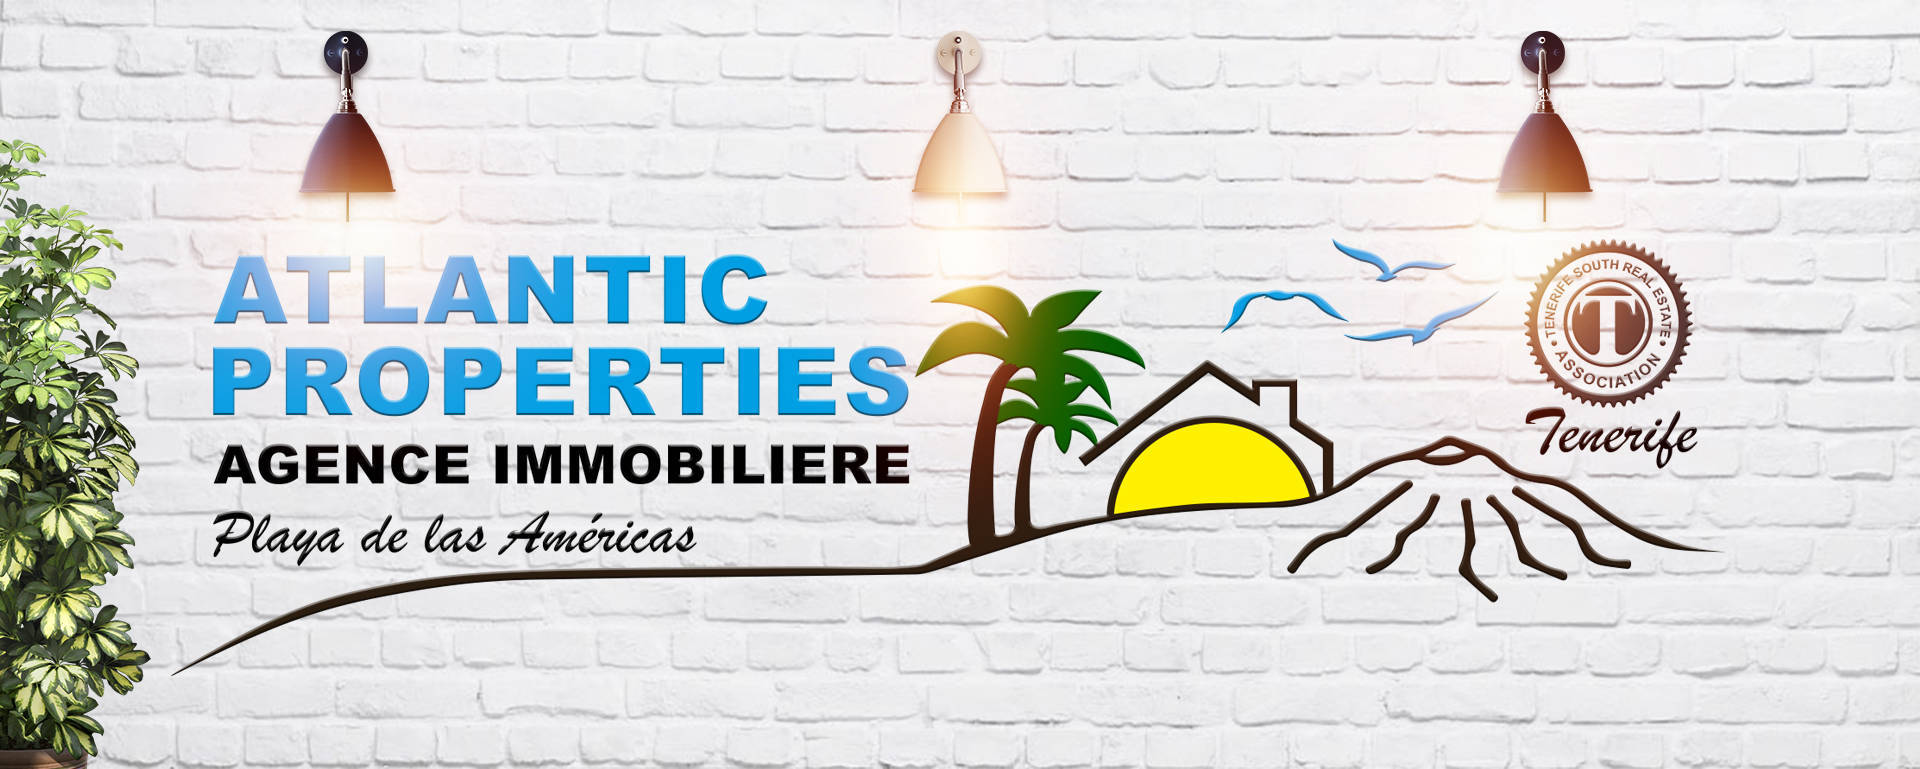 Logo Atlantic Properties Agence immobiliere by TecniPublic.es